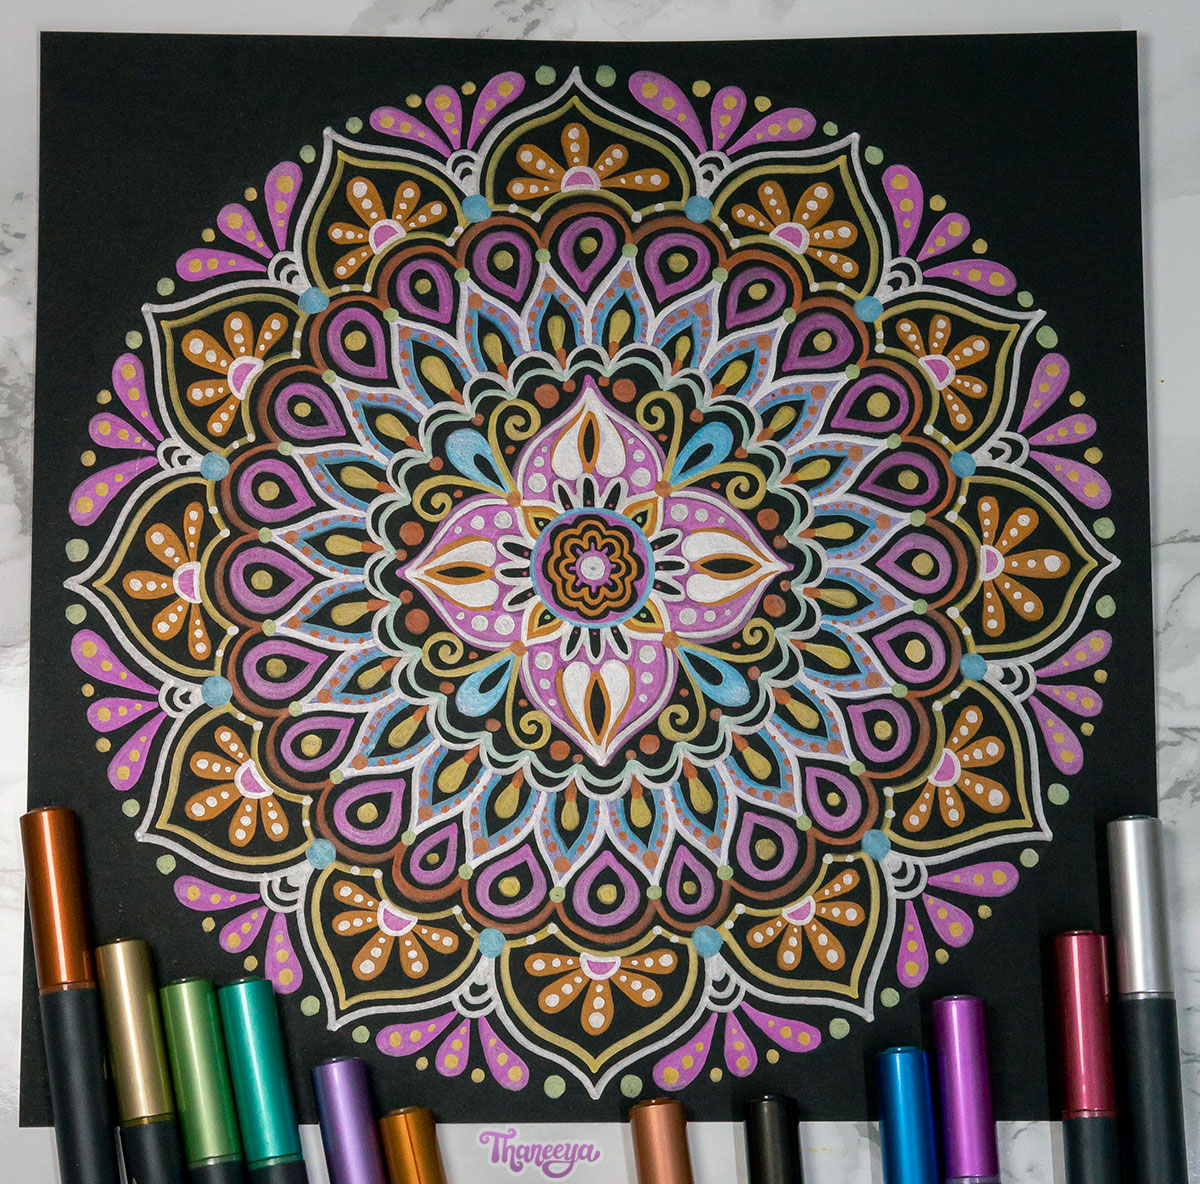 Spectrum Noir Metallic Markers - Mandala on Black Paper by Thaneeya McArdle